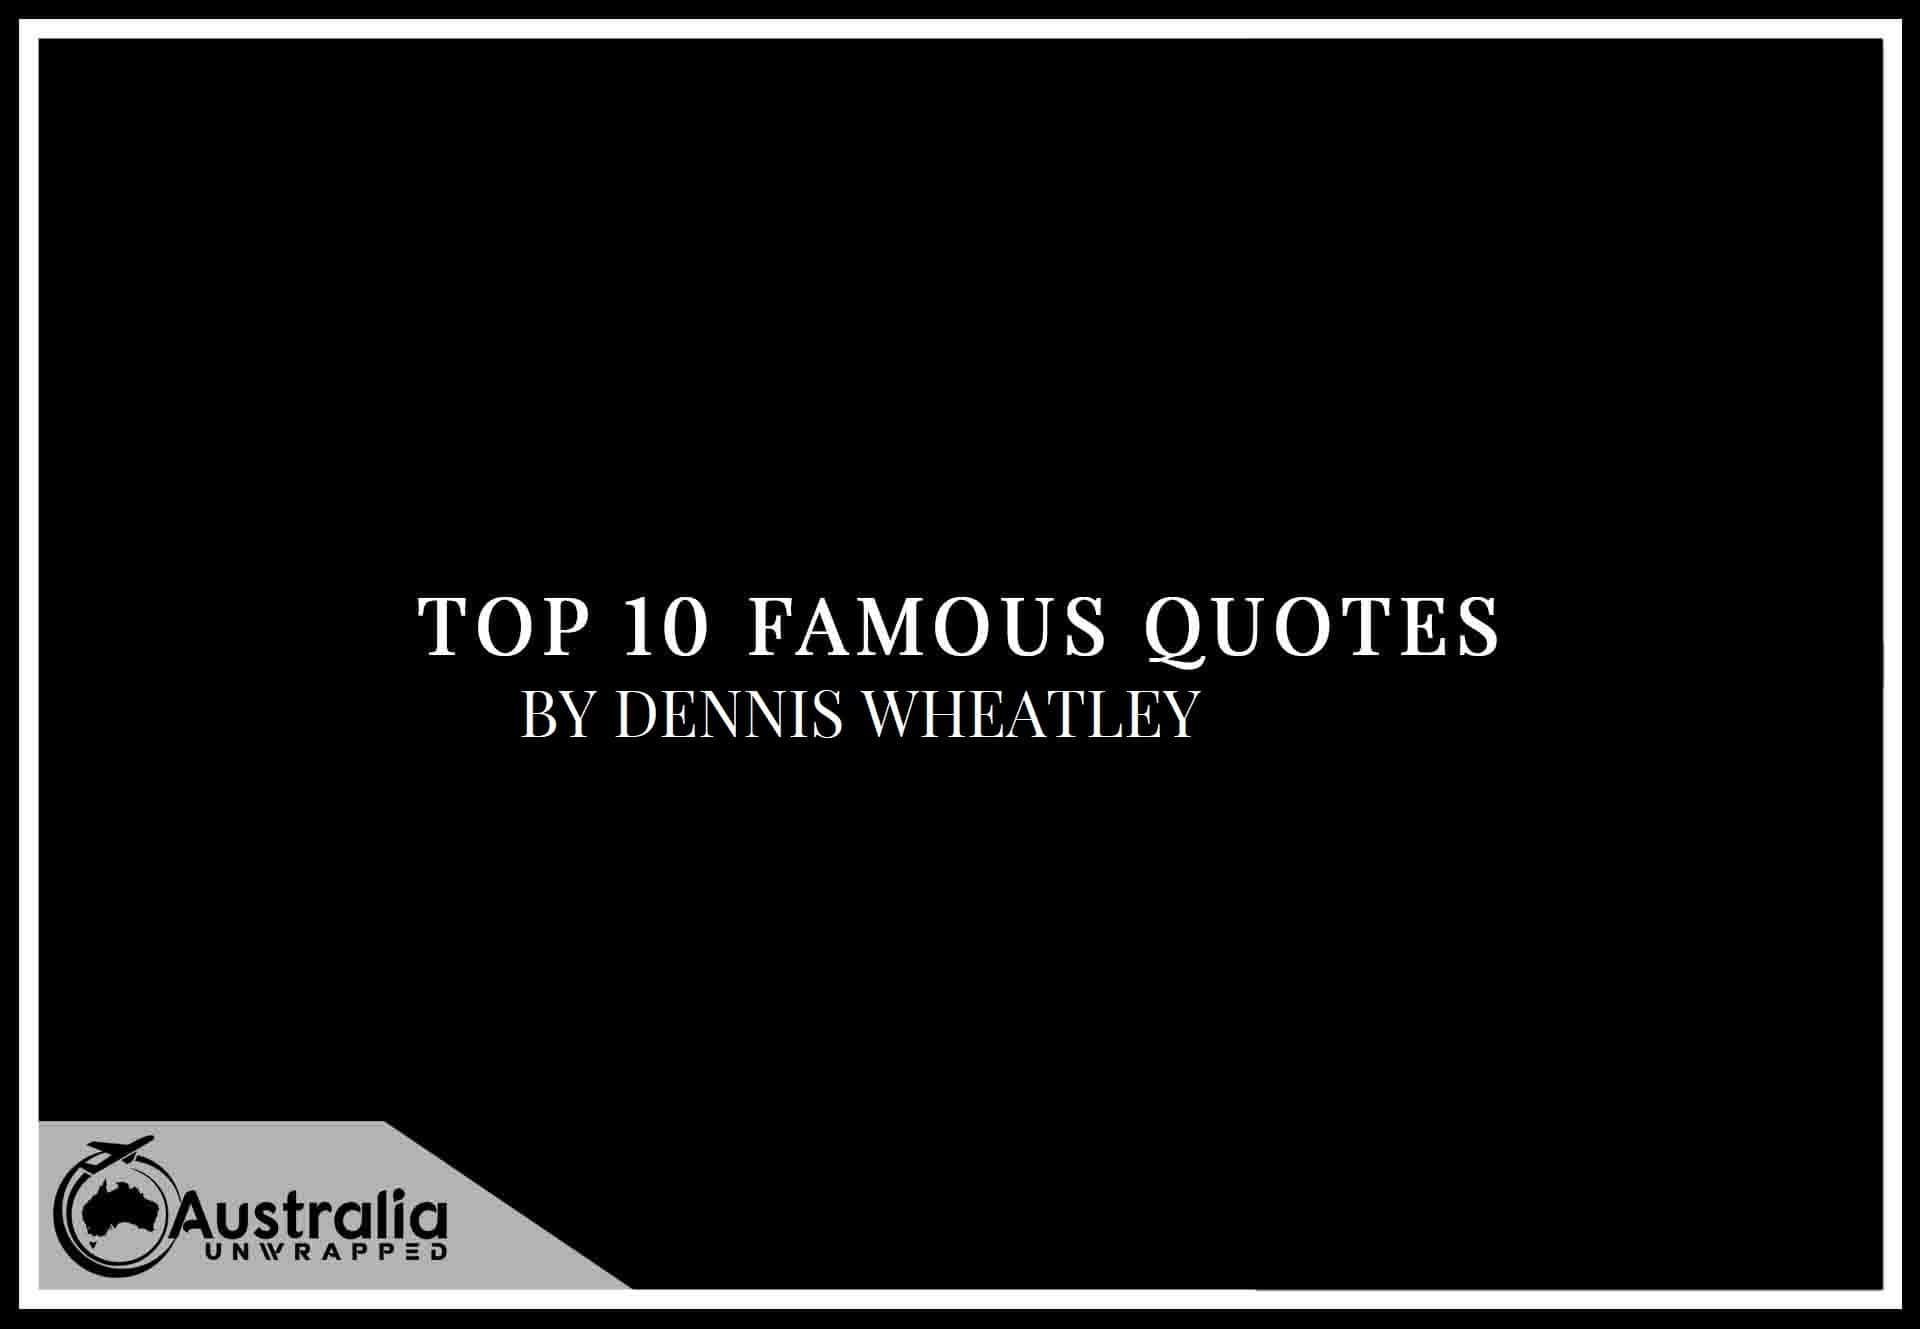 Top 10 Famous Quotes by Author Dennis Wheatley